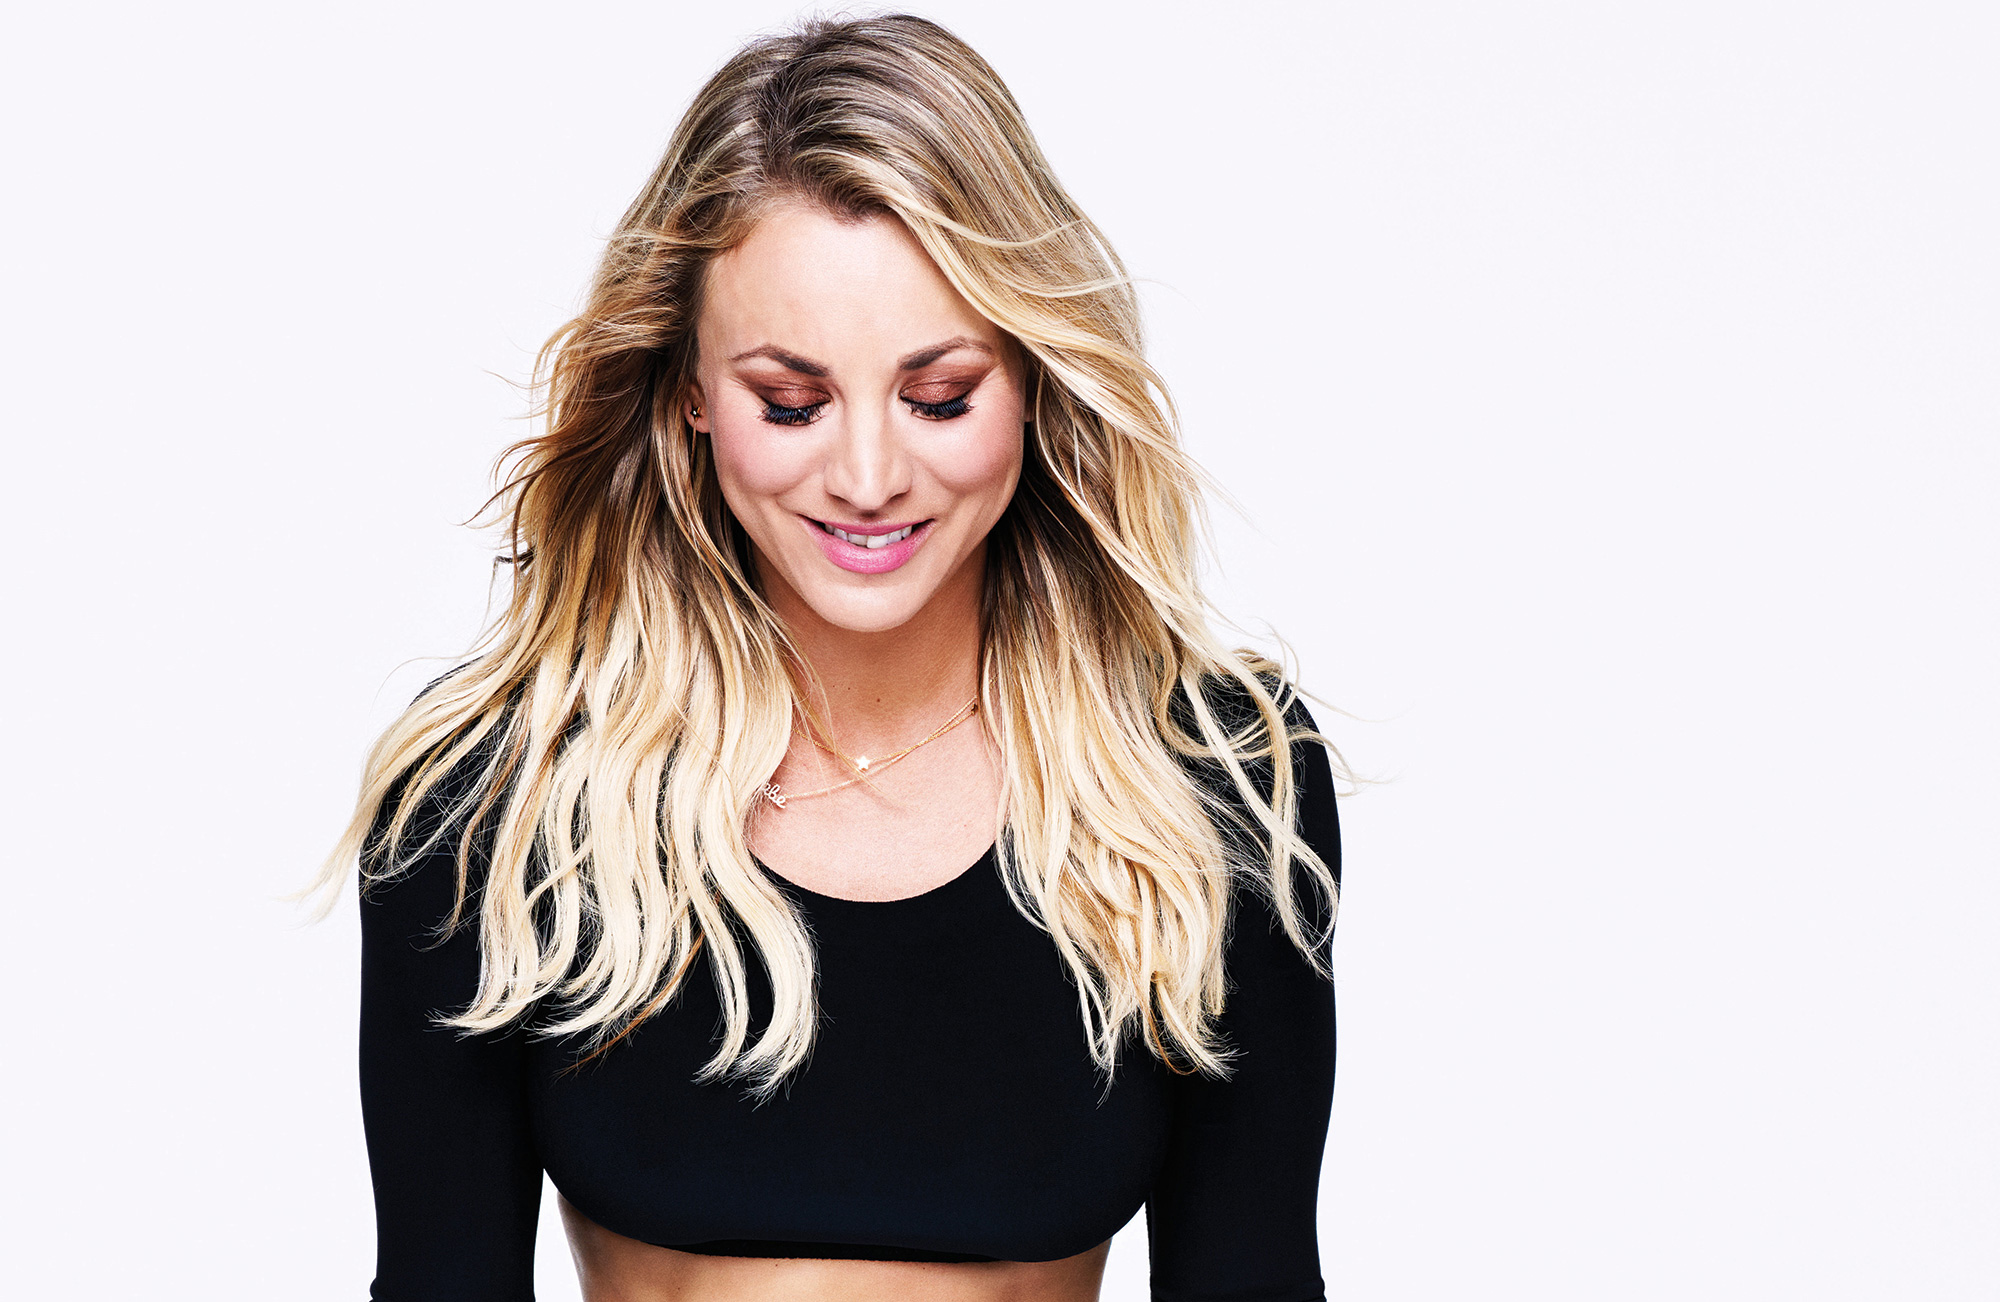 Kaley Cuoco 2017 Hd Celebrities 4k Wallpapers Images Backgrounds